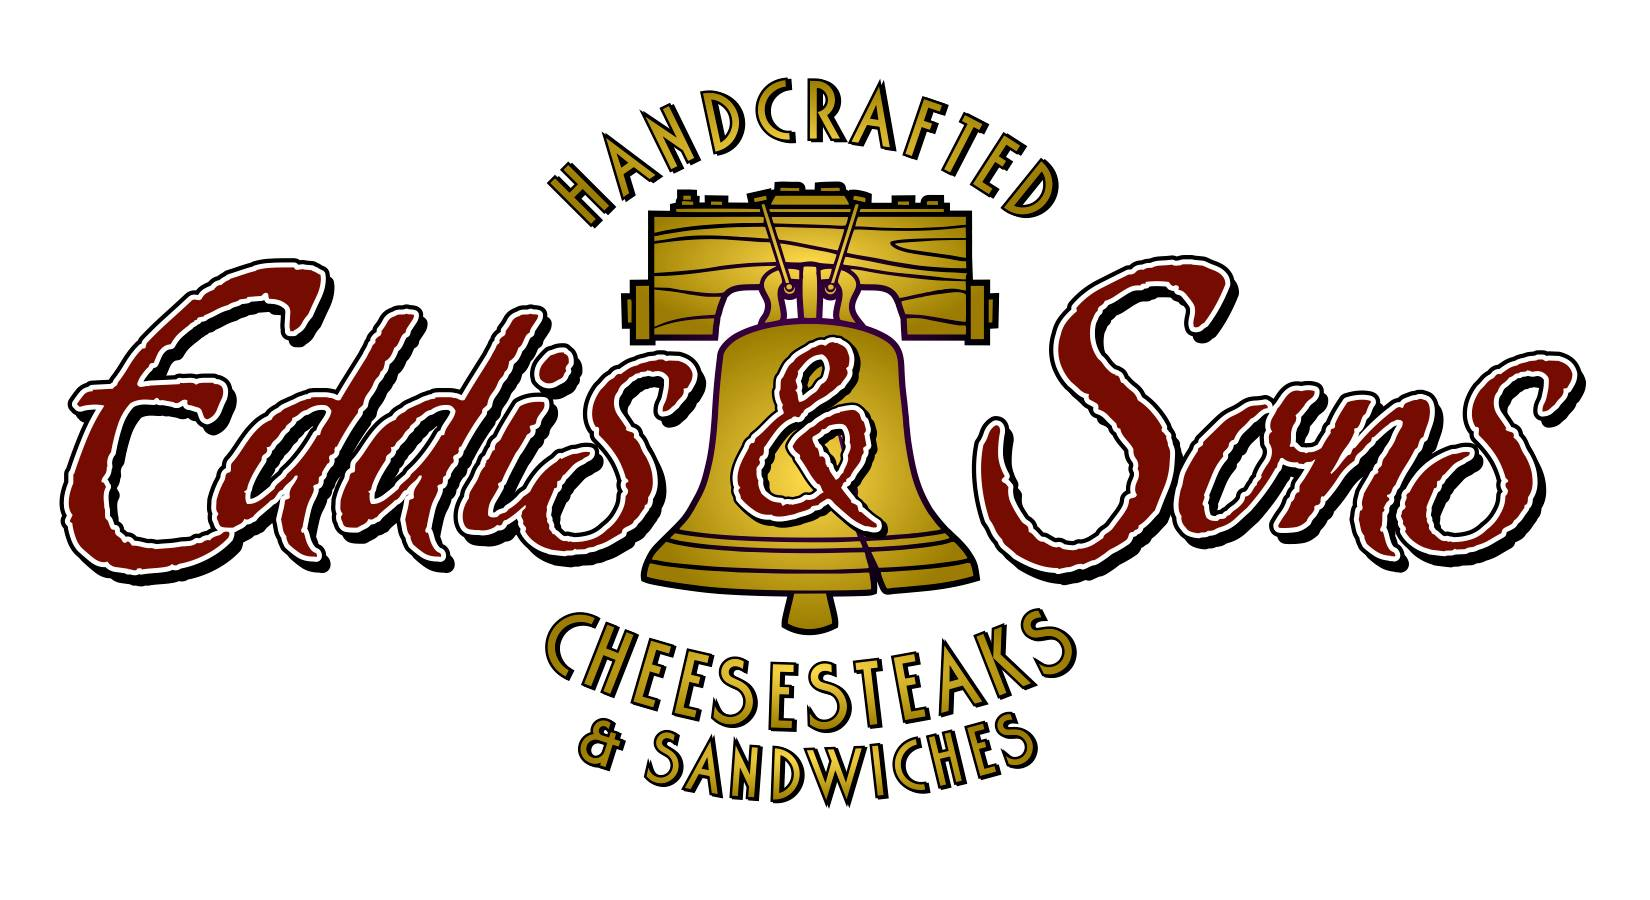 Eddis_and_sons_logo_jpeg.jpg